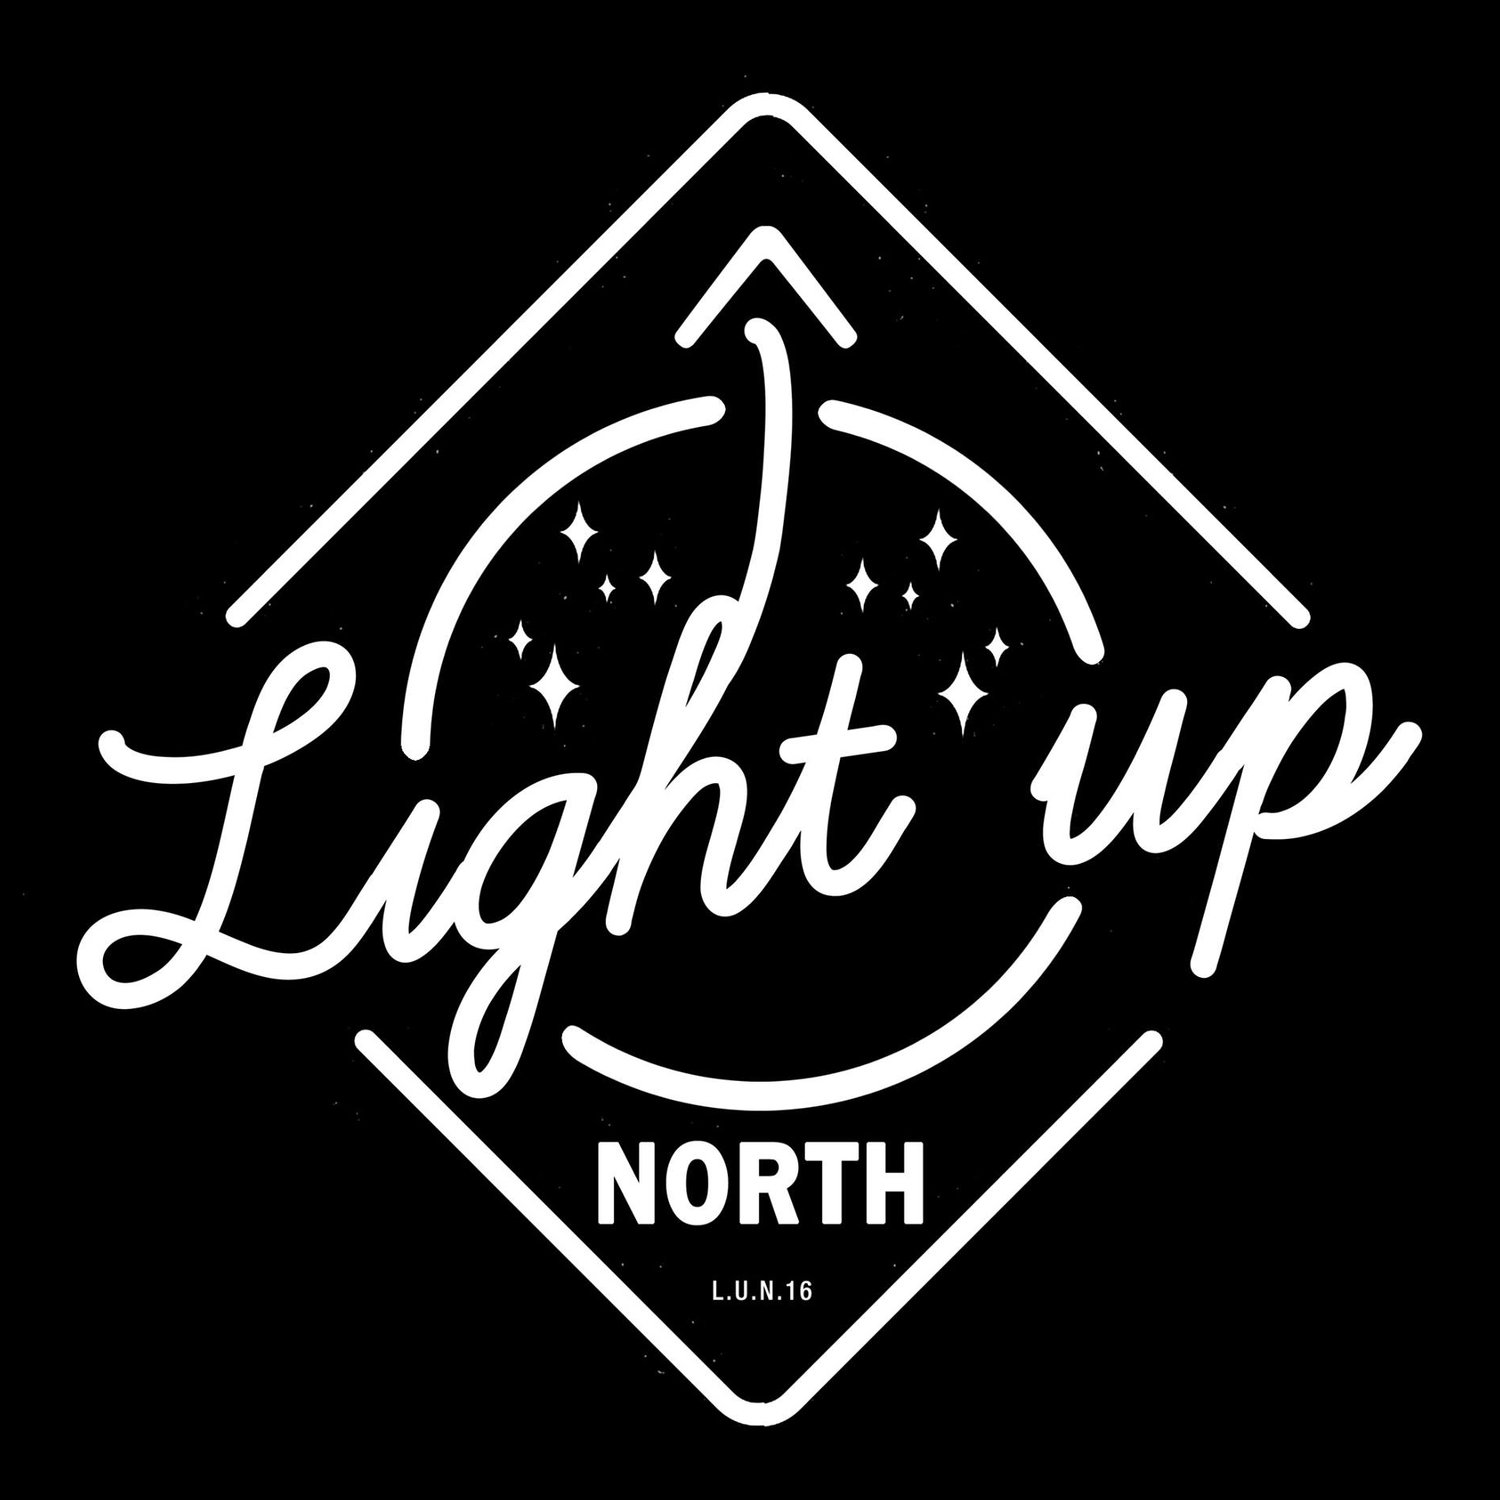 Light Up North